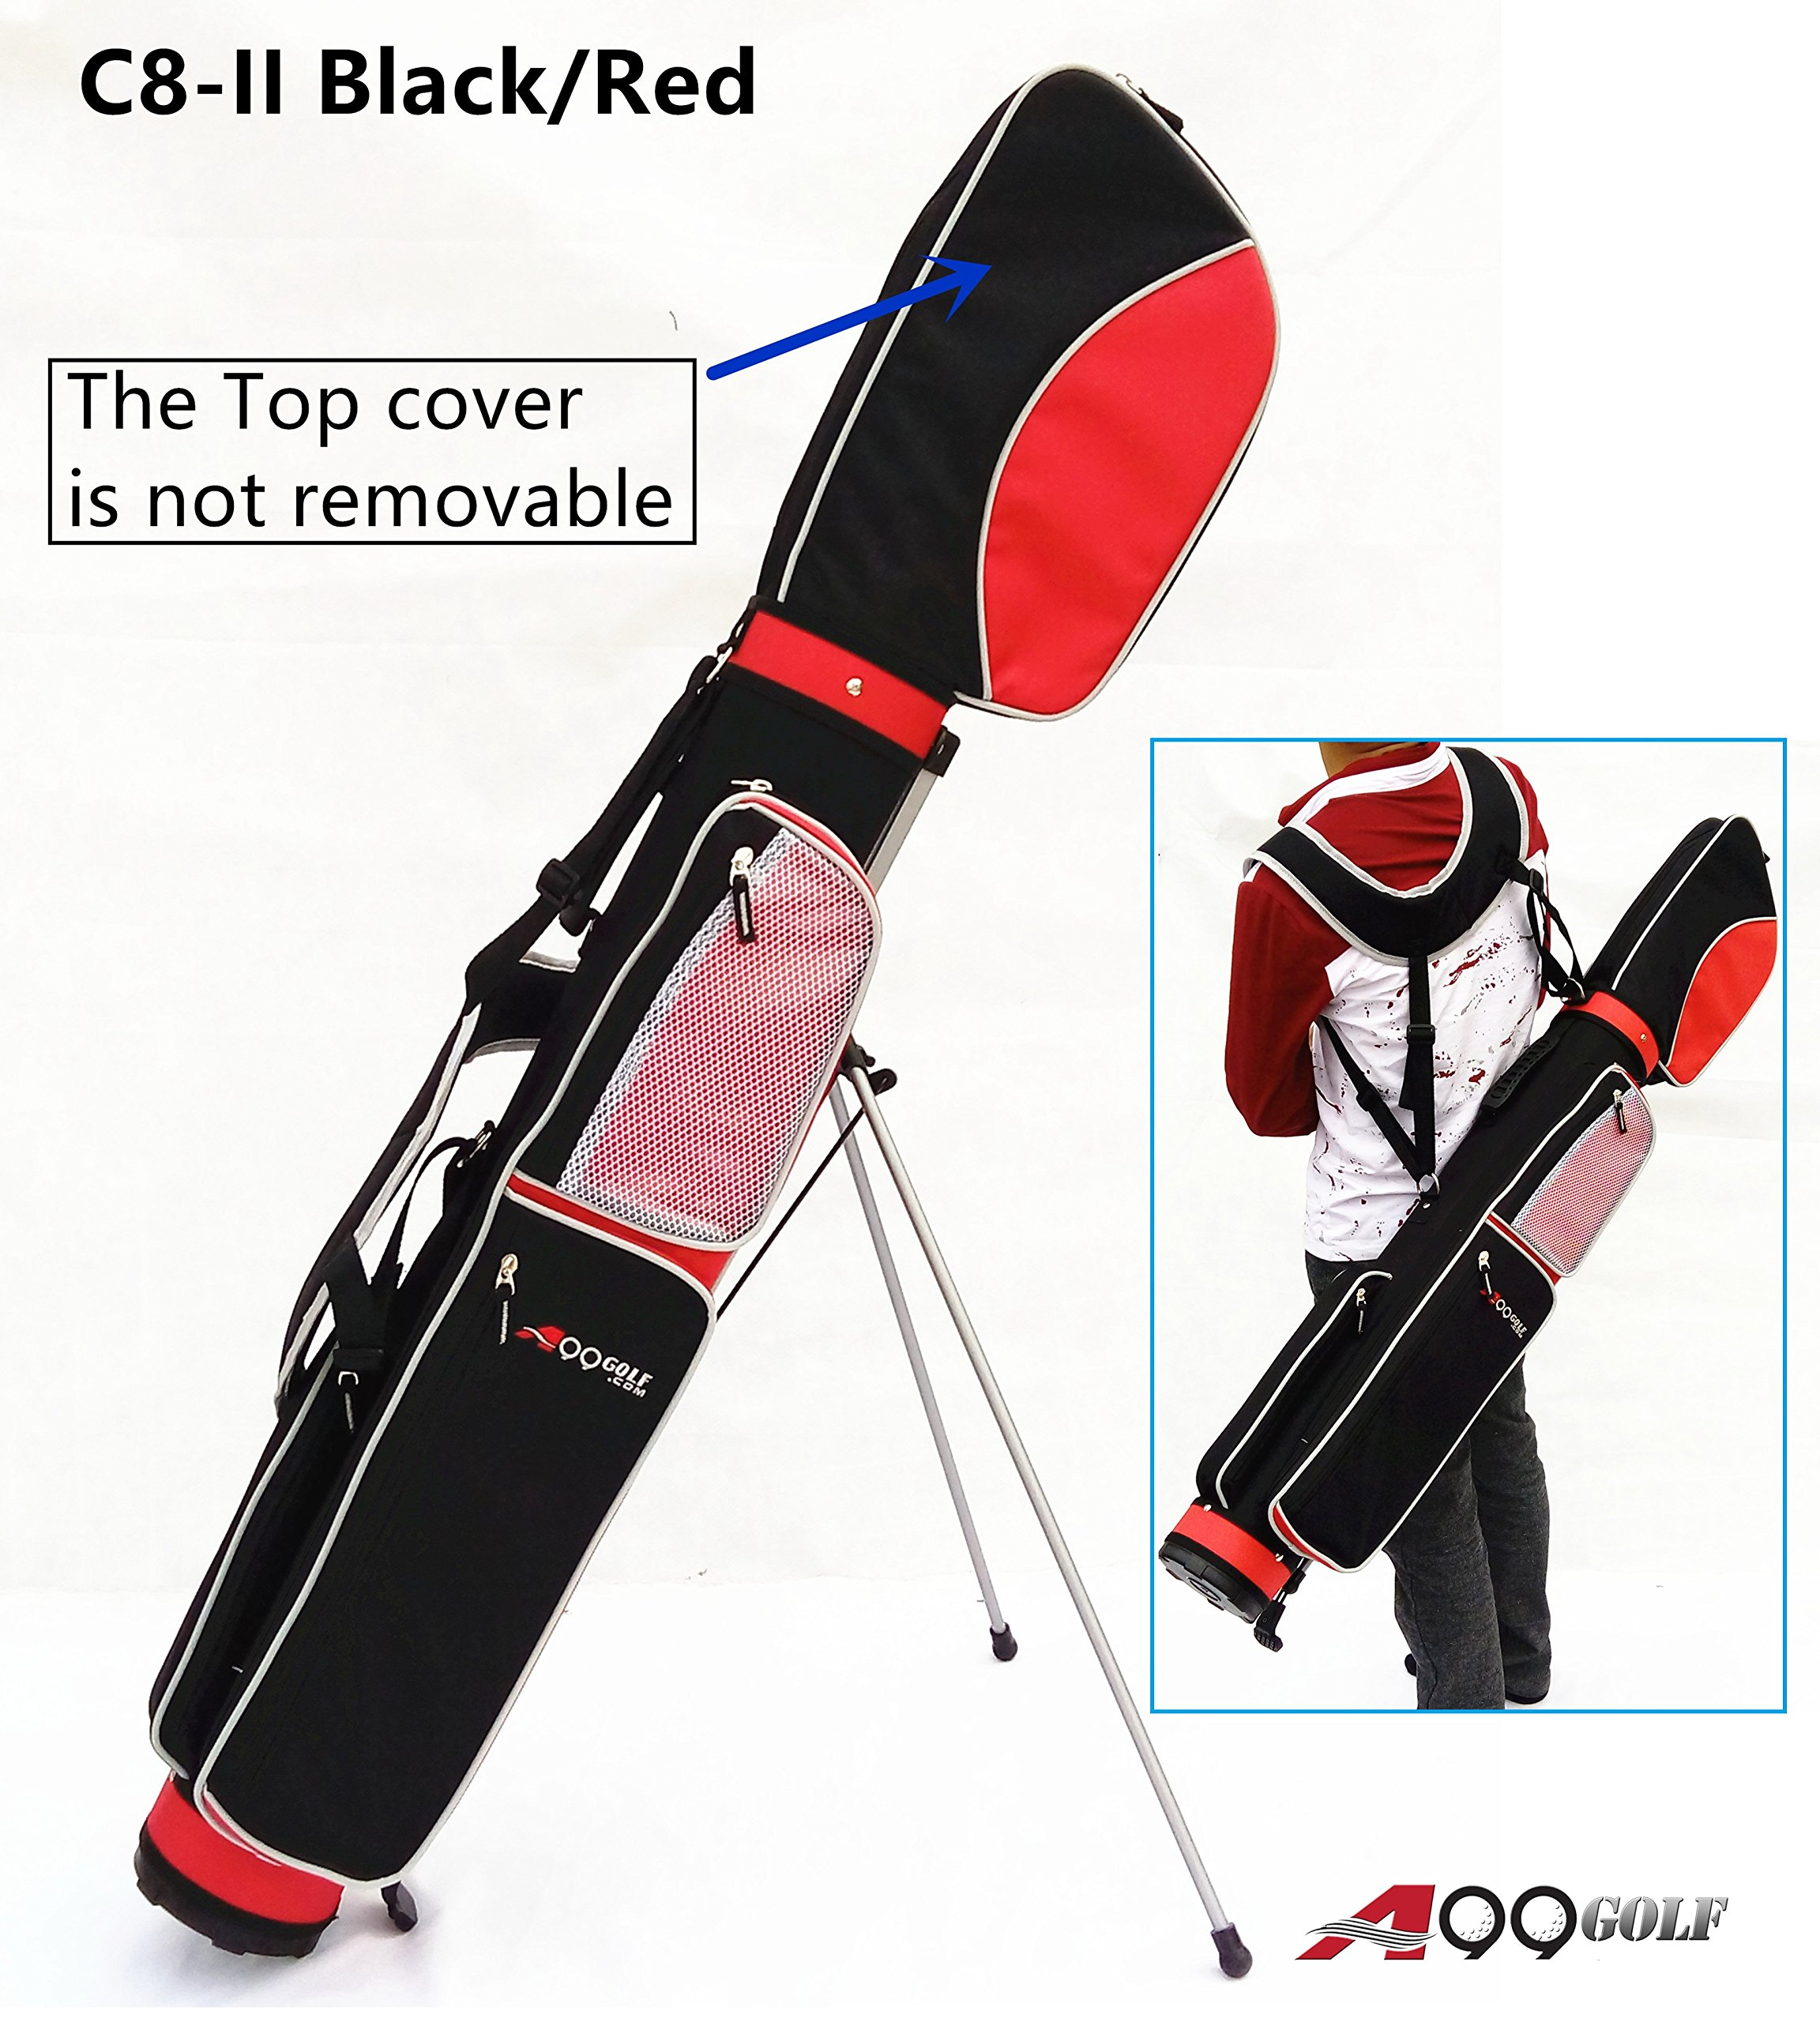 C8-II Golf Practice Range/Sunday/Stand/Pencil/Carry Bag (Red/Blk + 1pc Zerofy Counter) by A99 Golf